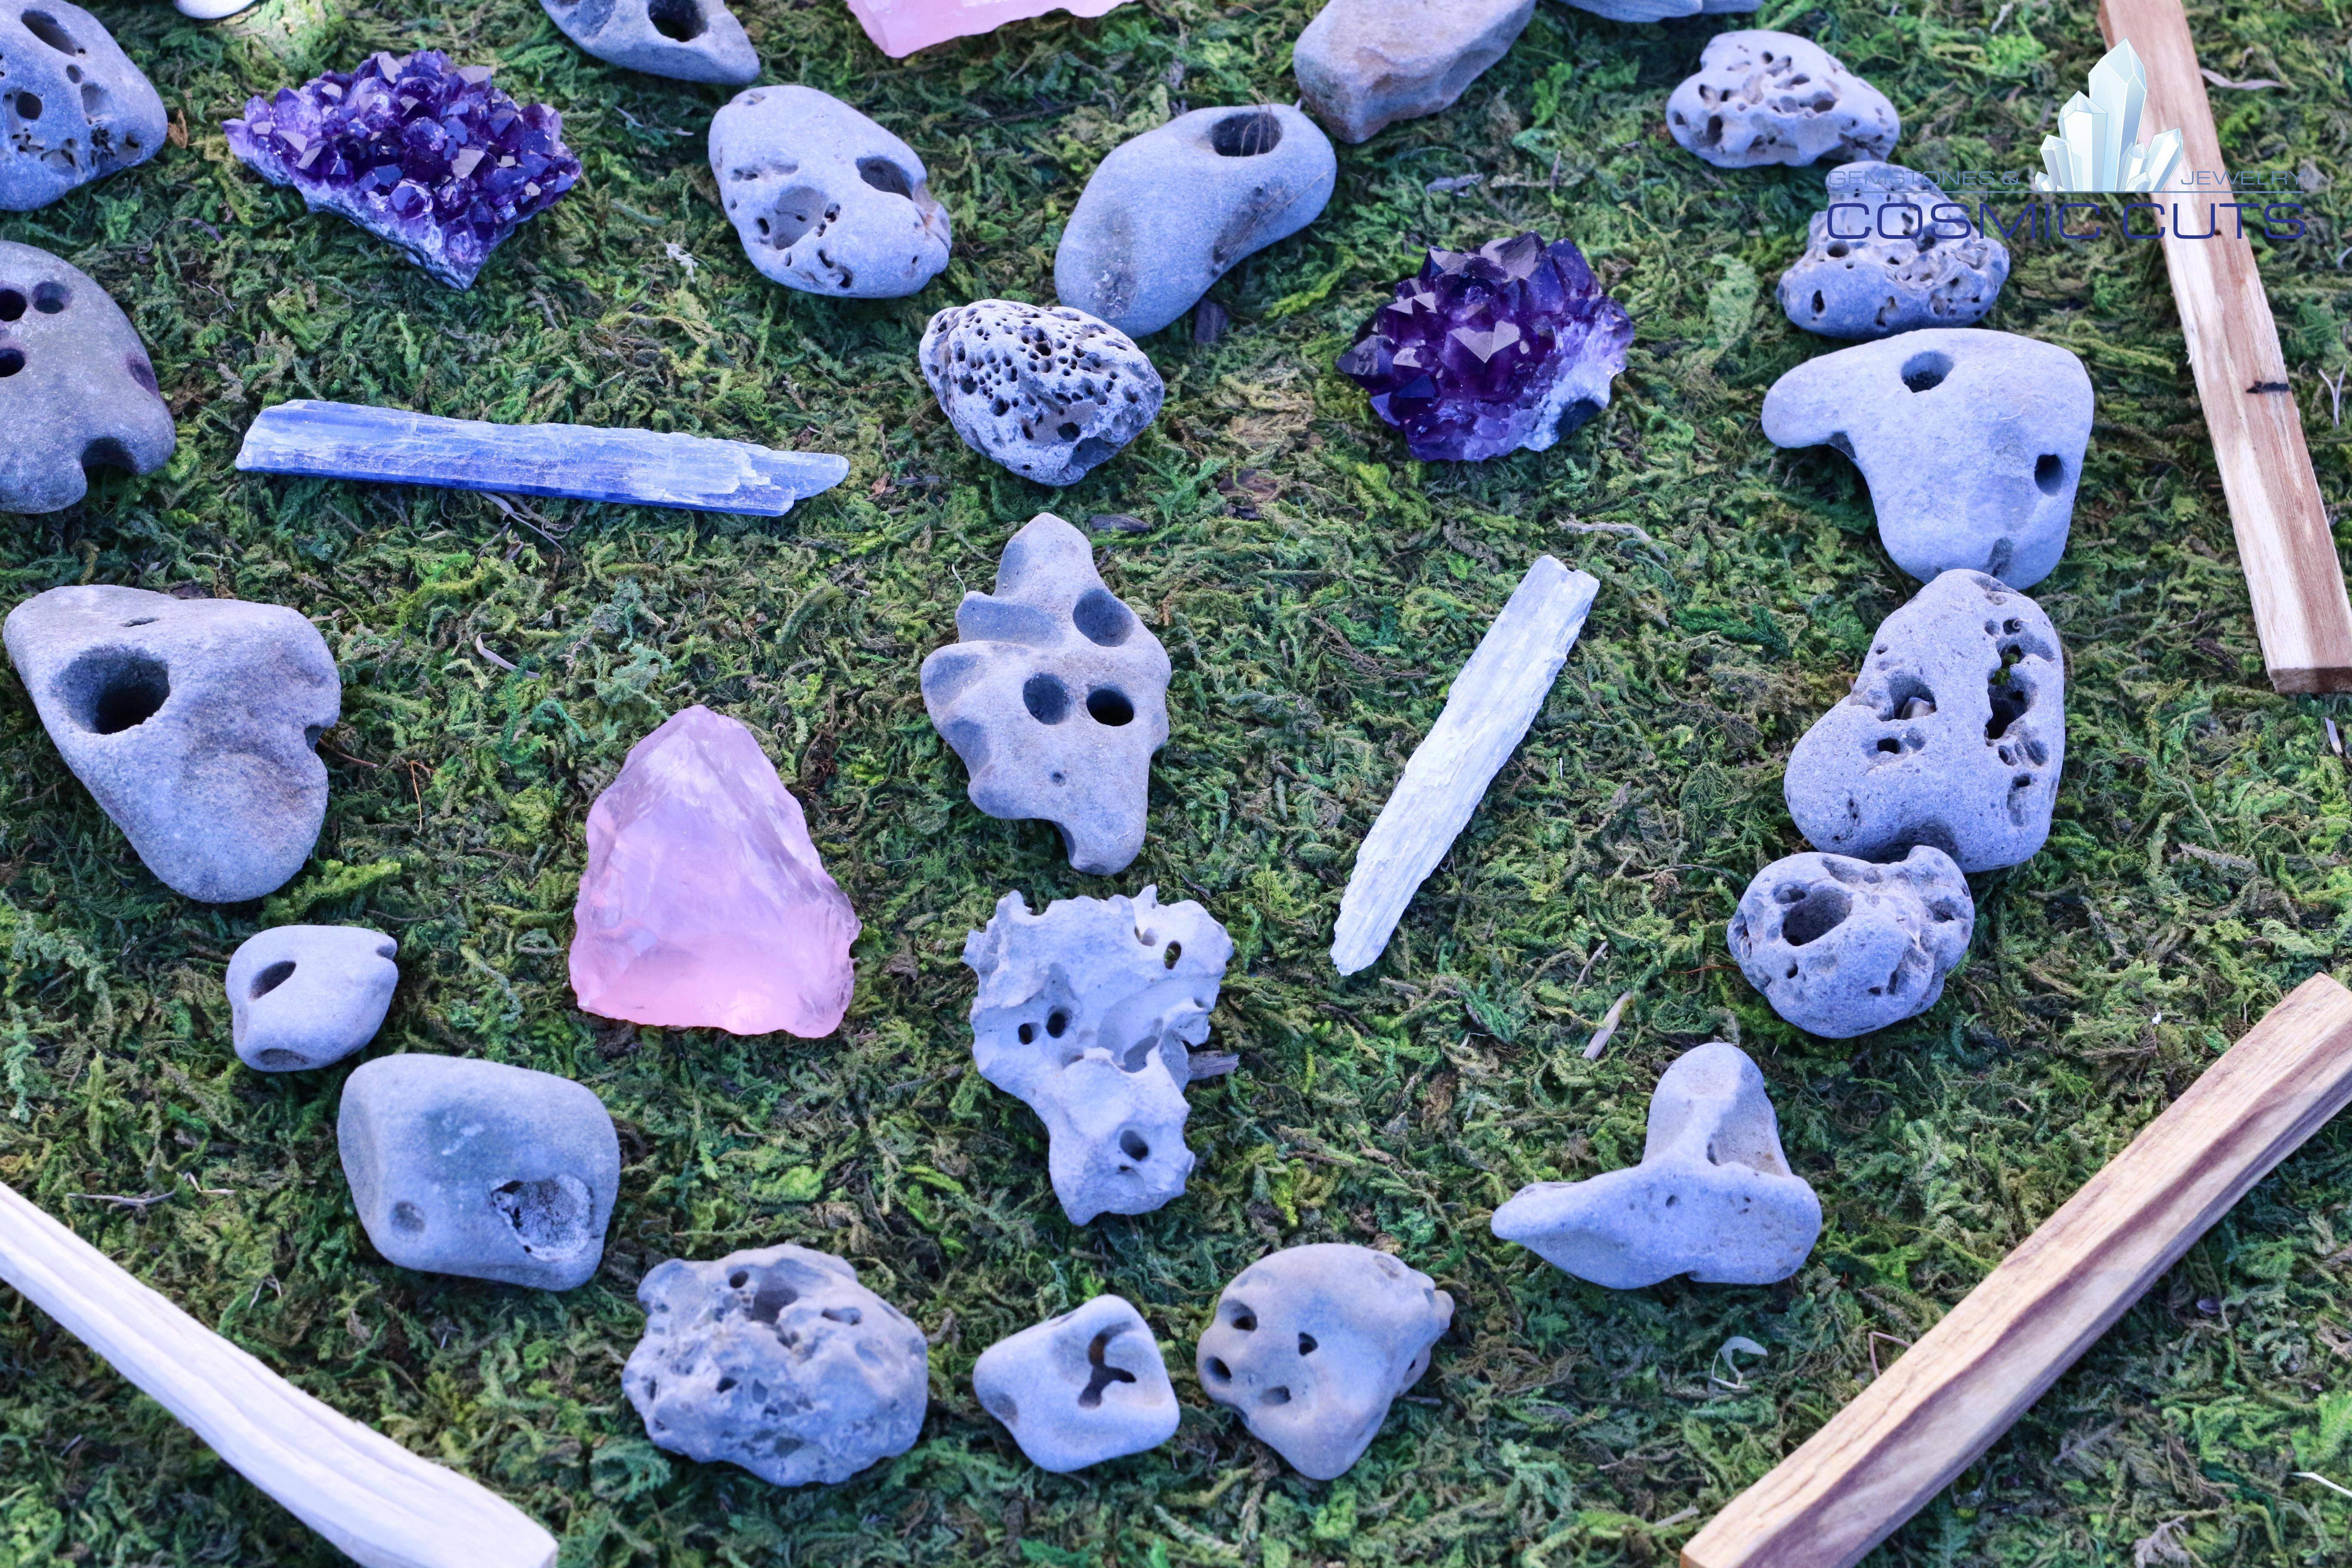 Natural Hag Stone Fairy Stone Holey Stone Cosmic Cuts C A stone with a natural hole through it. cosmic cuts